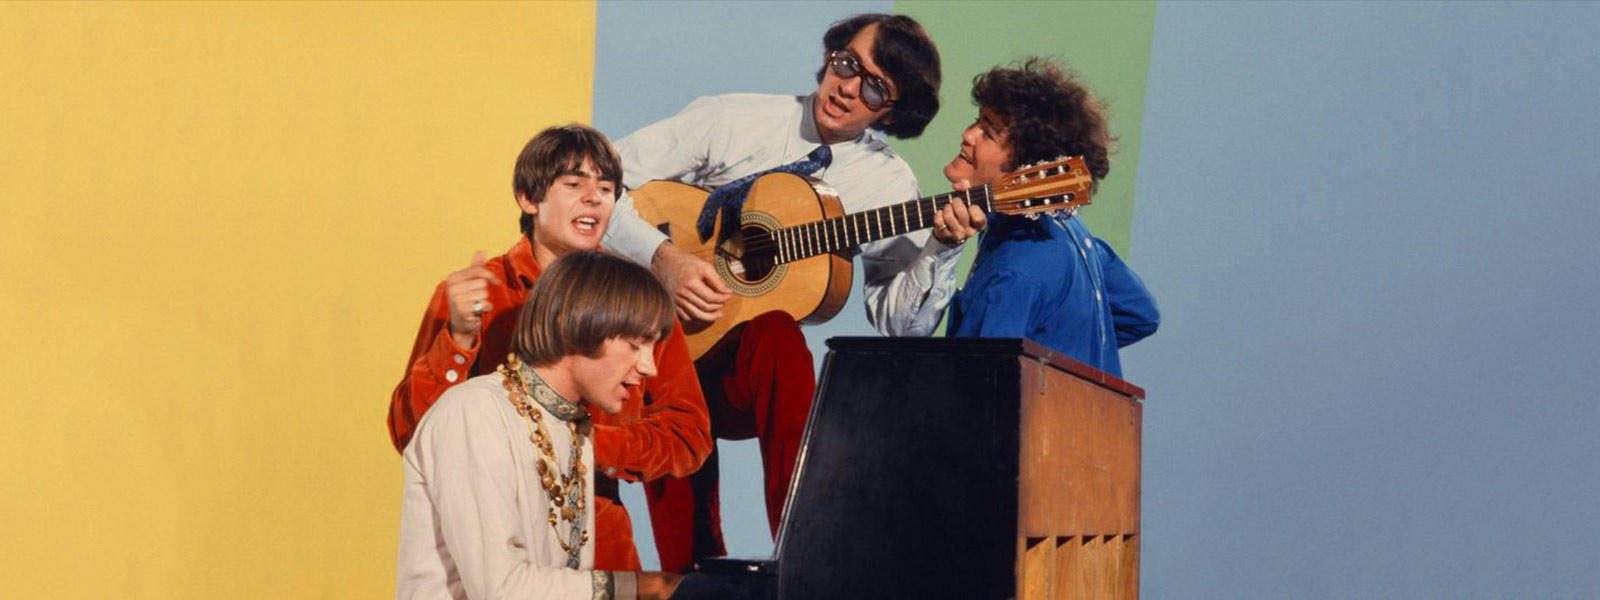 RIP: Peter Tork, Founding Member of The Monkees, Dead at 77